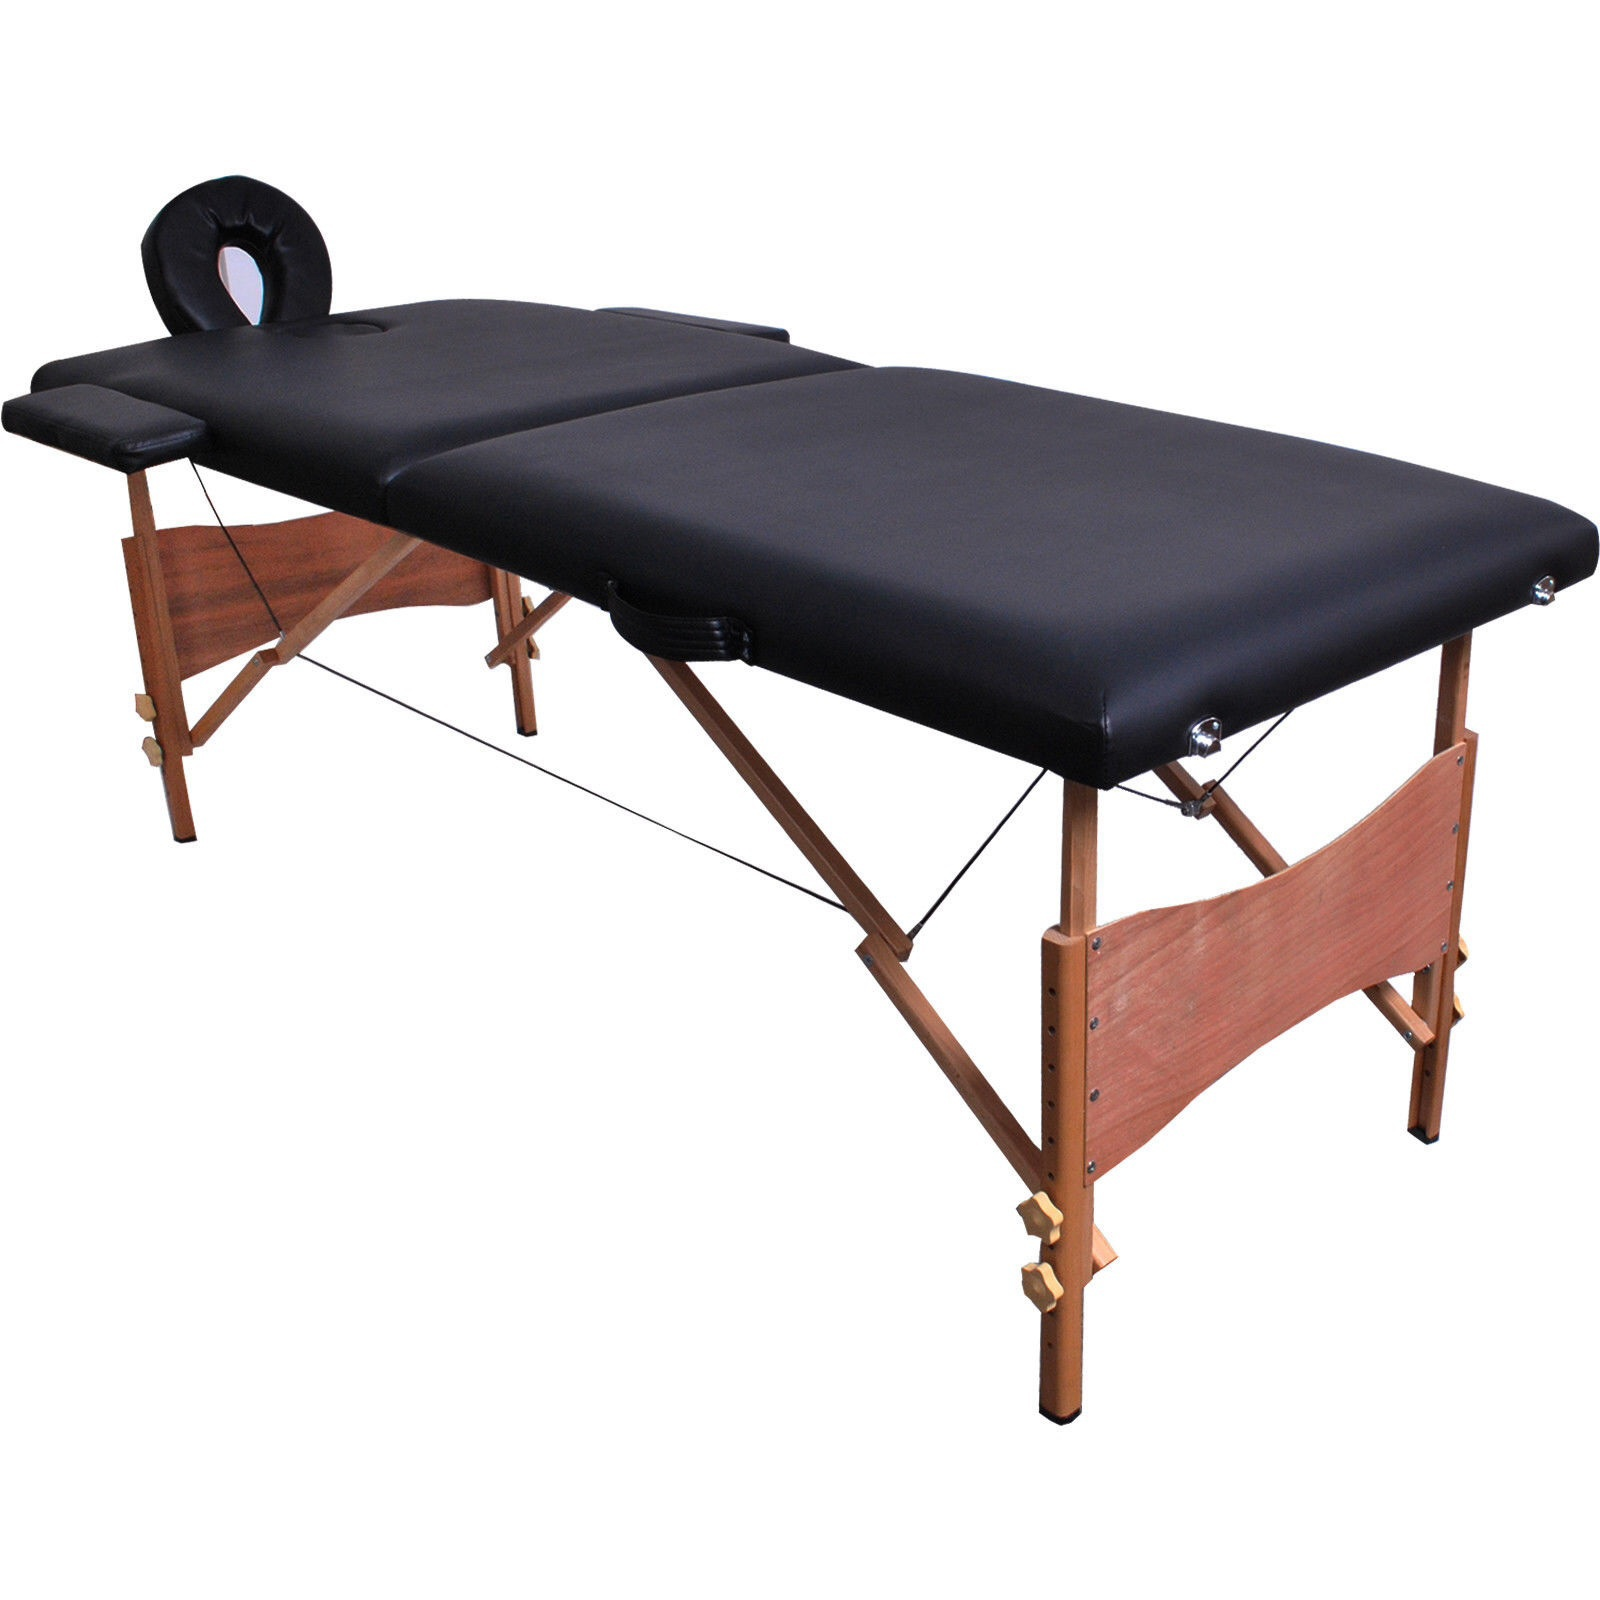 """New 84""""L Portable Massage Table Facial SPA Bed Tattoo w/Free Carry Case Black"""